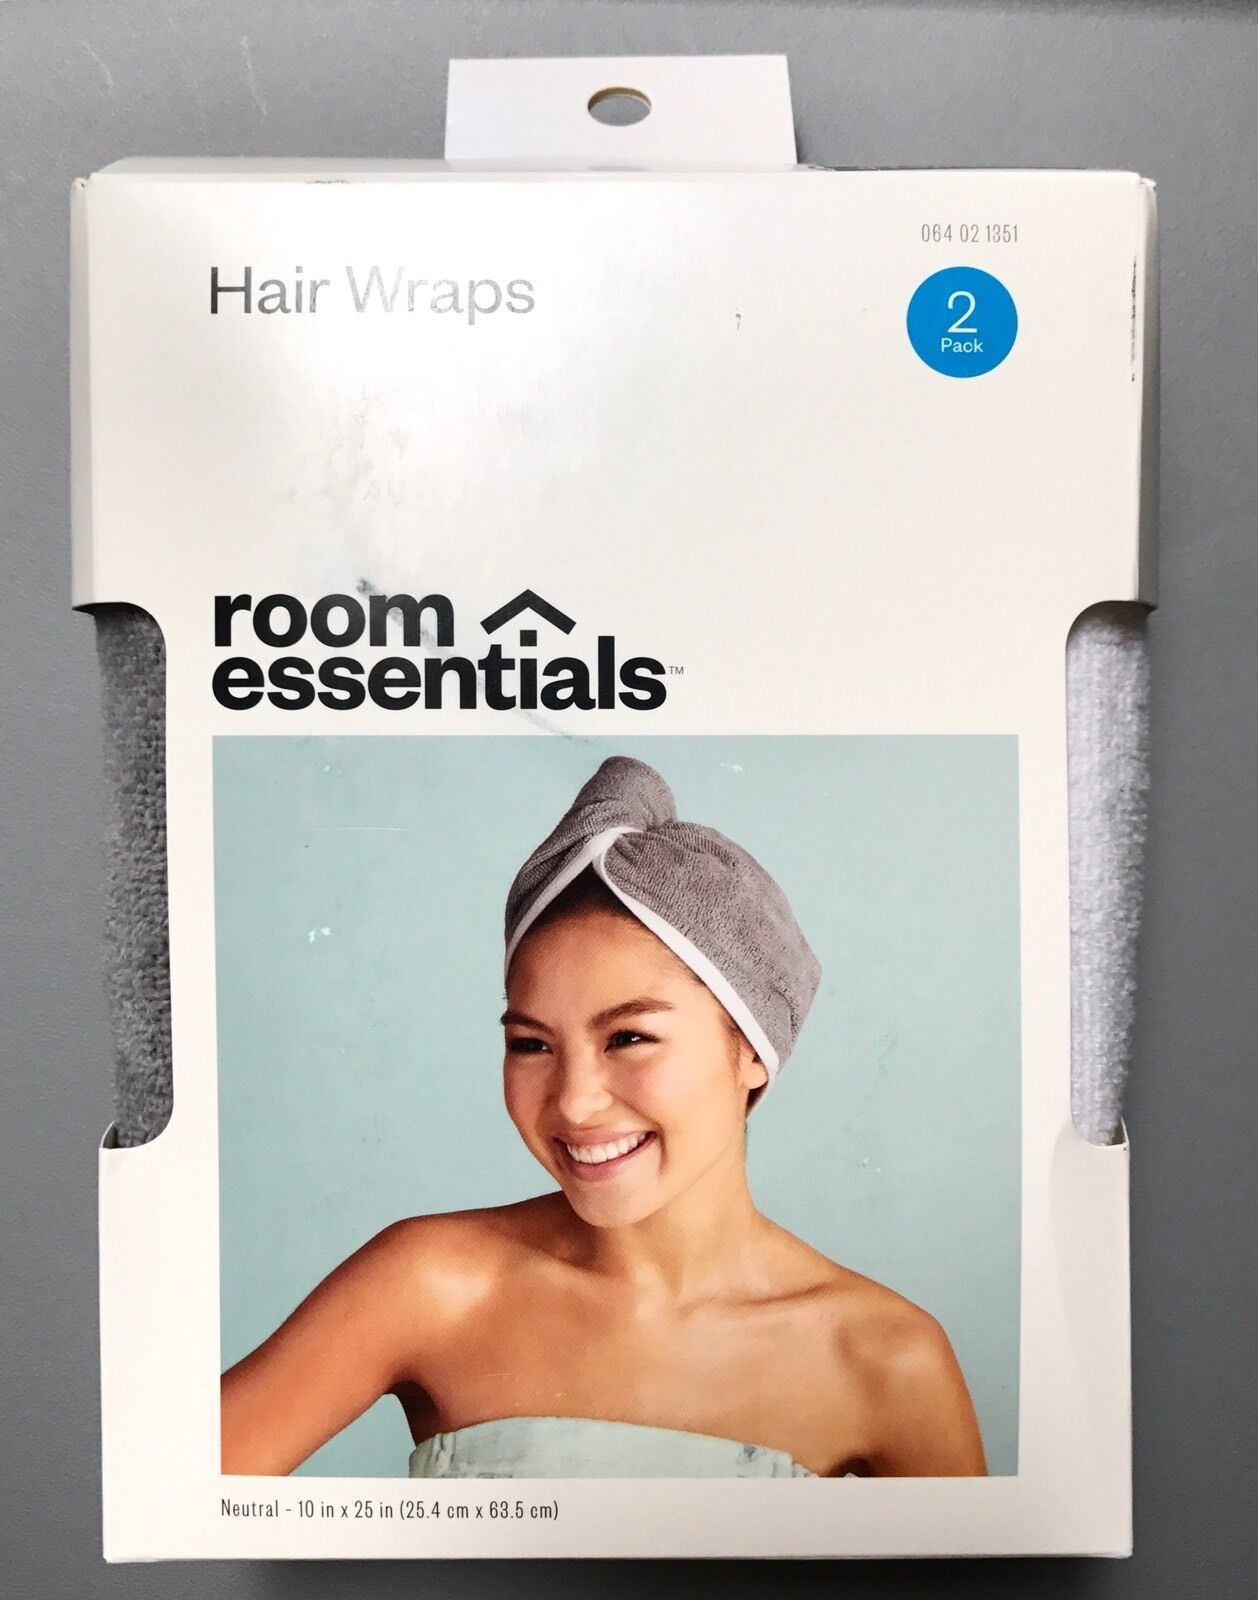 Hair Wraps 2 Pack Gray White After Shower Bath Pool Target Swimming Towel NEW